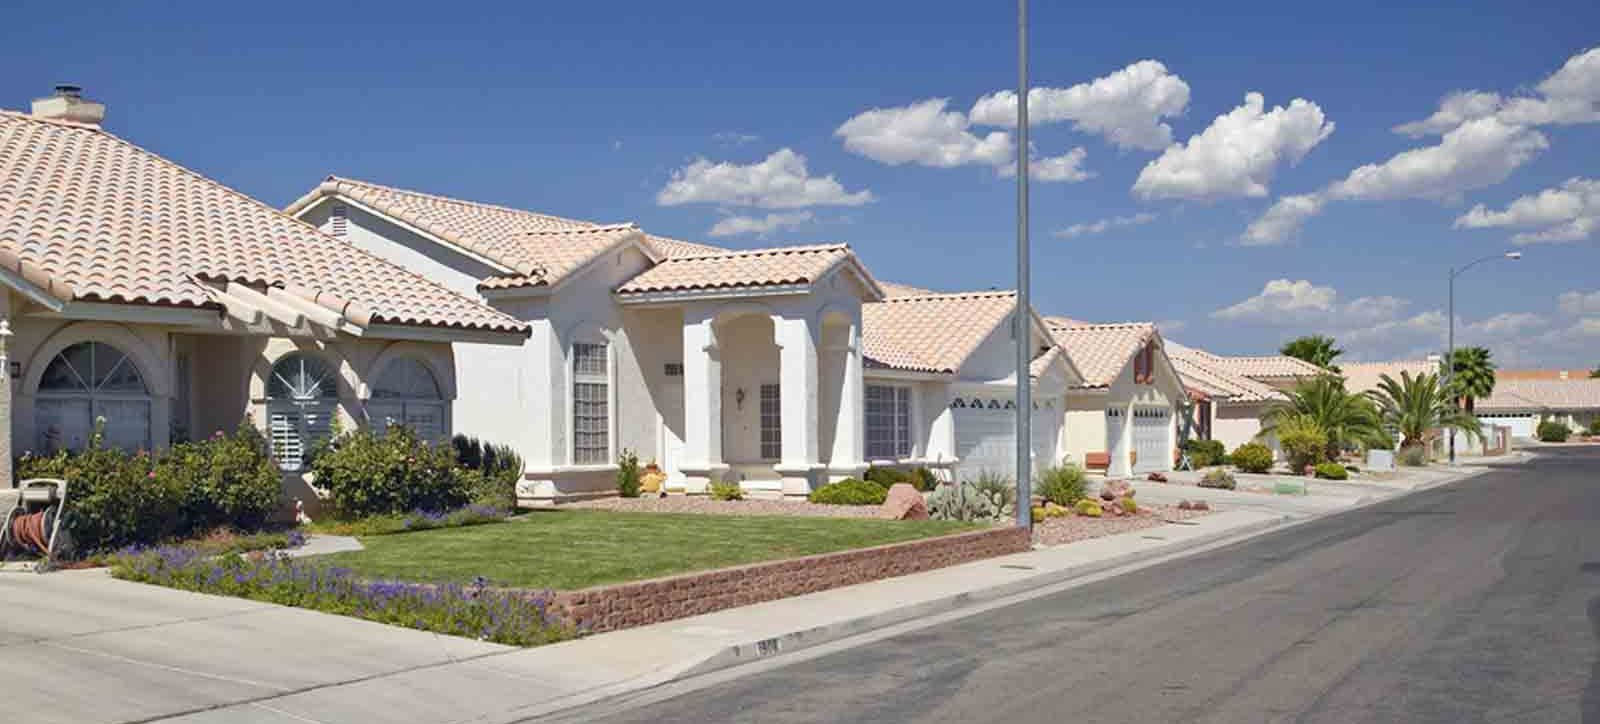 Homes For Sale In Southwest Las Vegas 75 Las Vegas Homes For Sale Call 1 702 882 8240